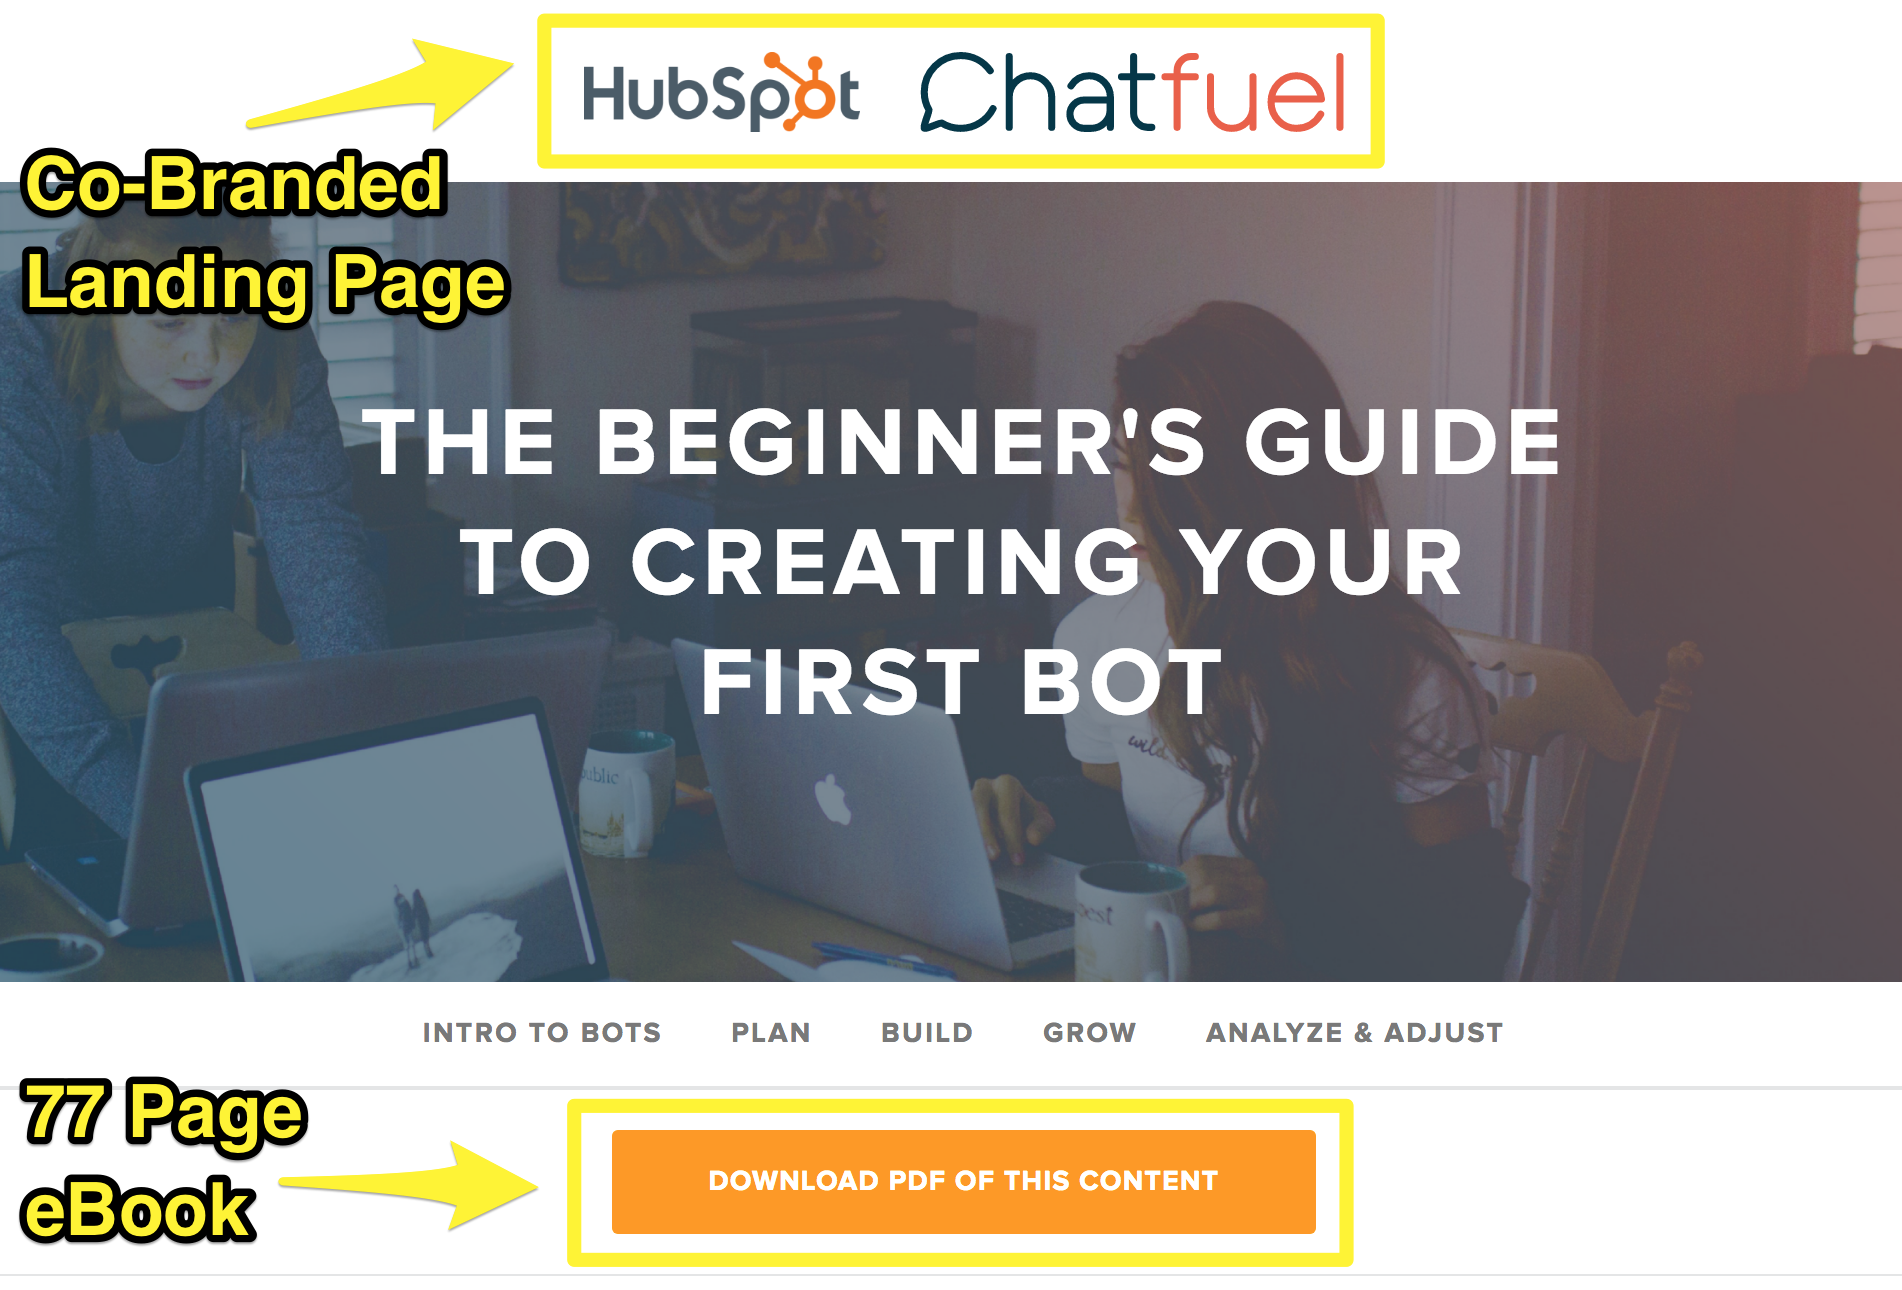 Screenshot showing a joint article between hubspot and chatfuel